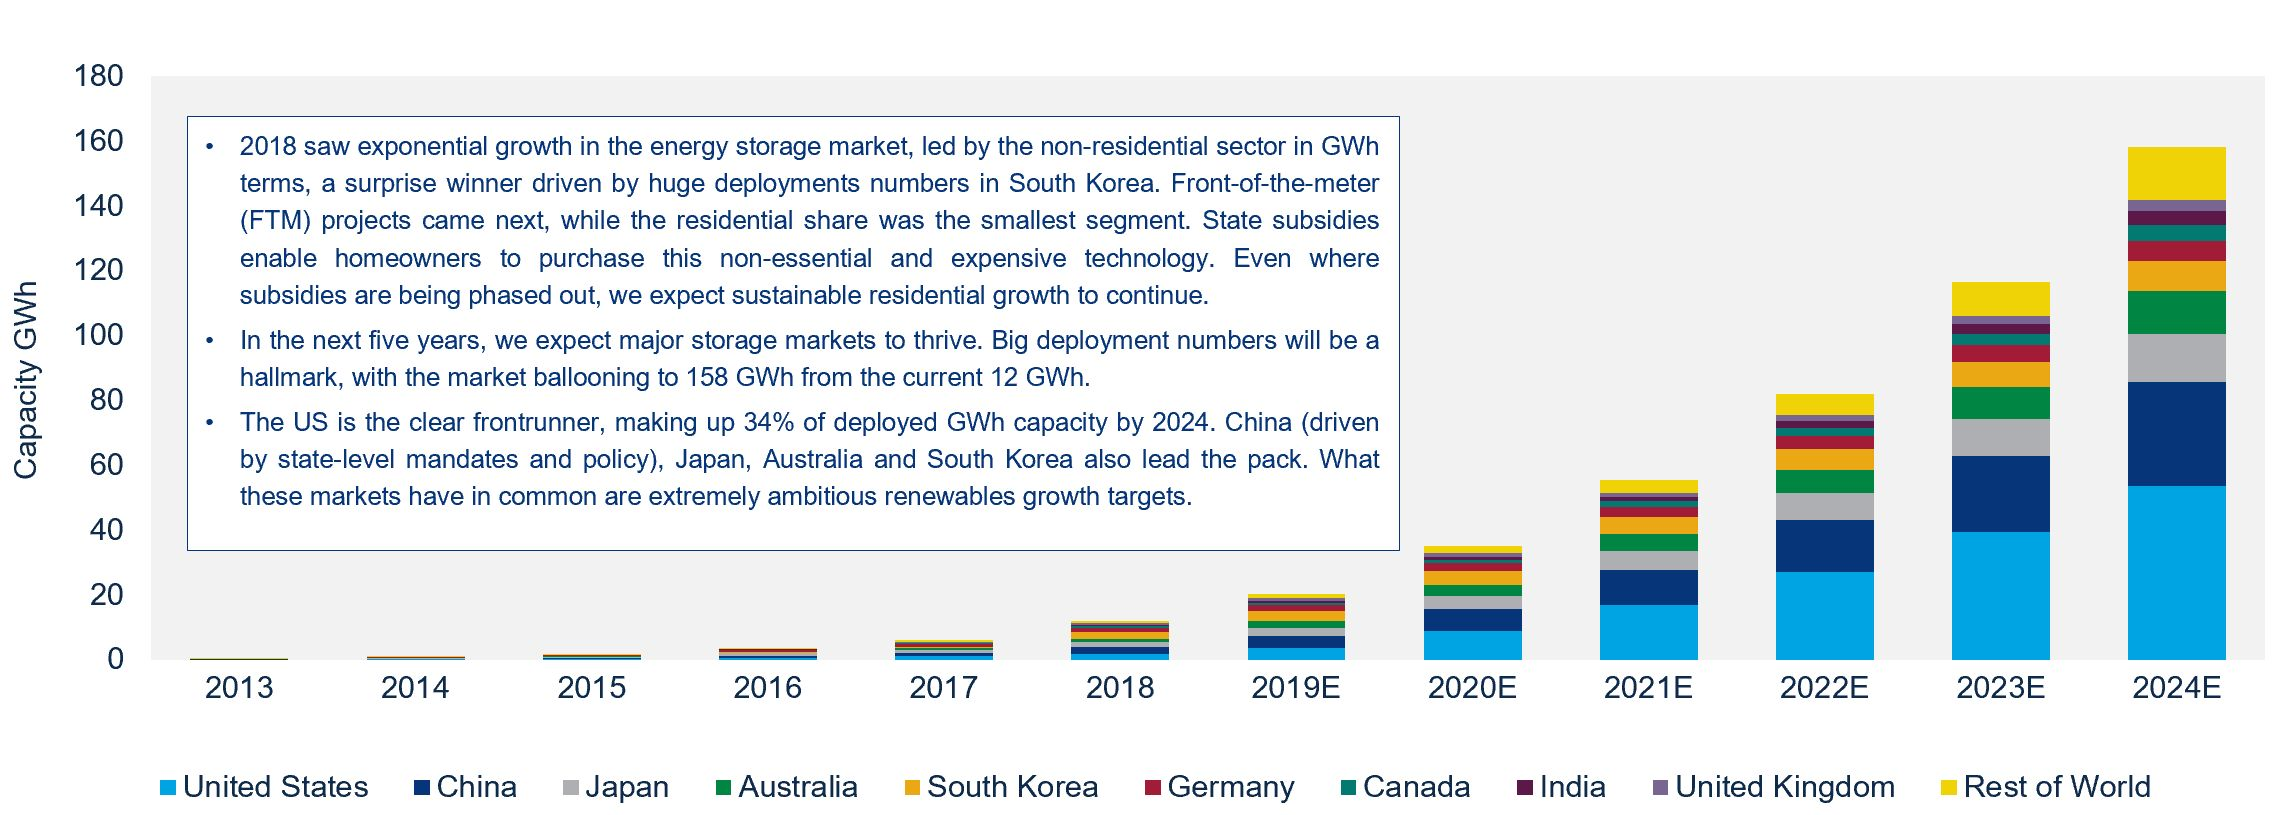 Wood Mackenzie's global energy storage outlook